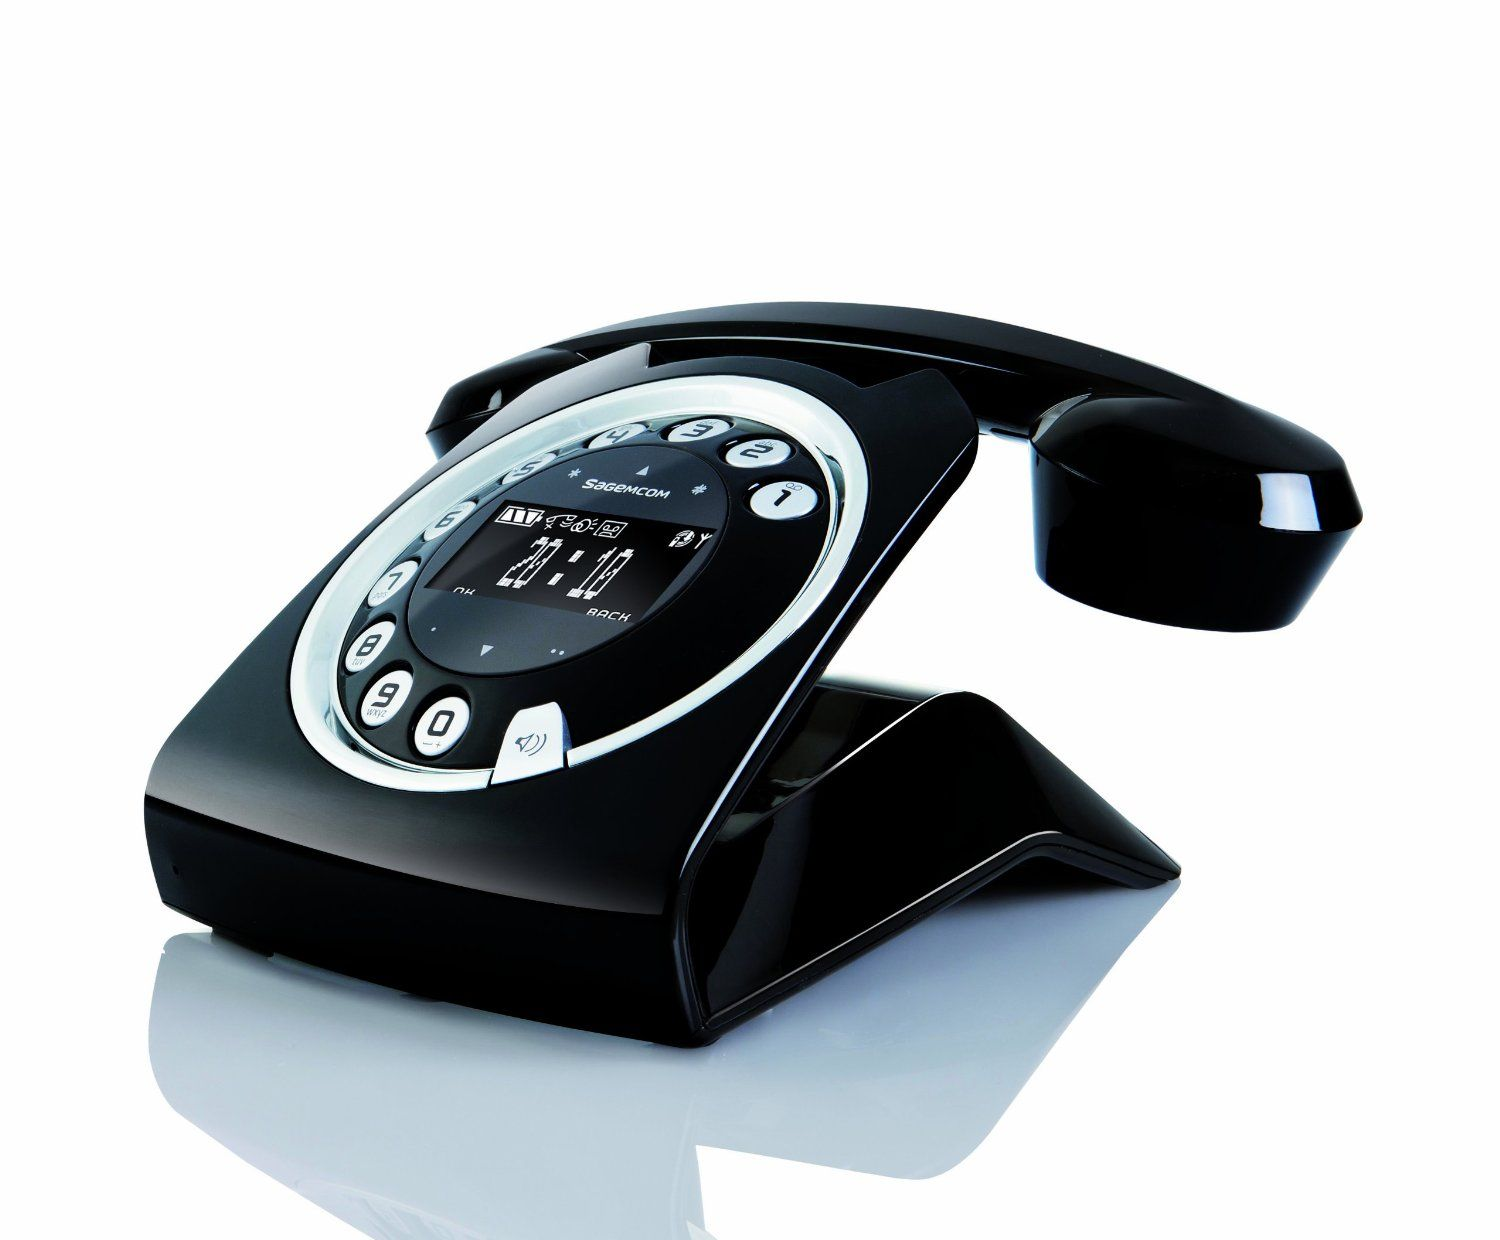 Sagemcom Sixty Digital Cordless Retro